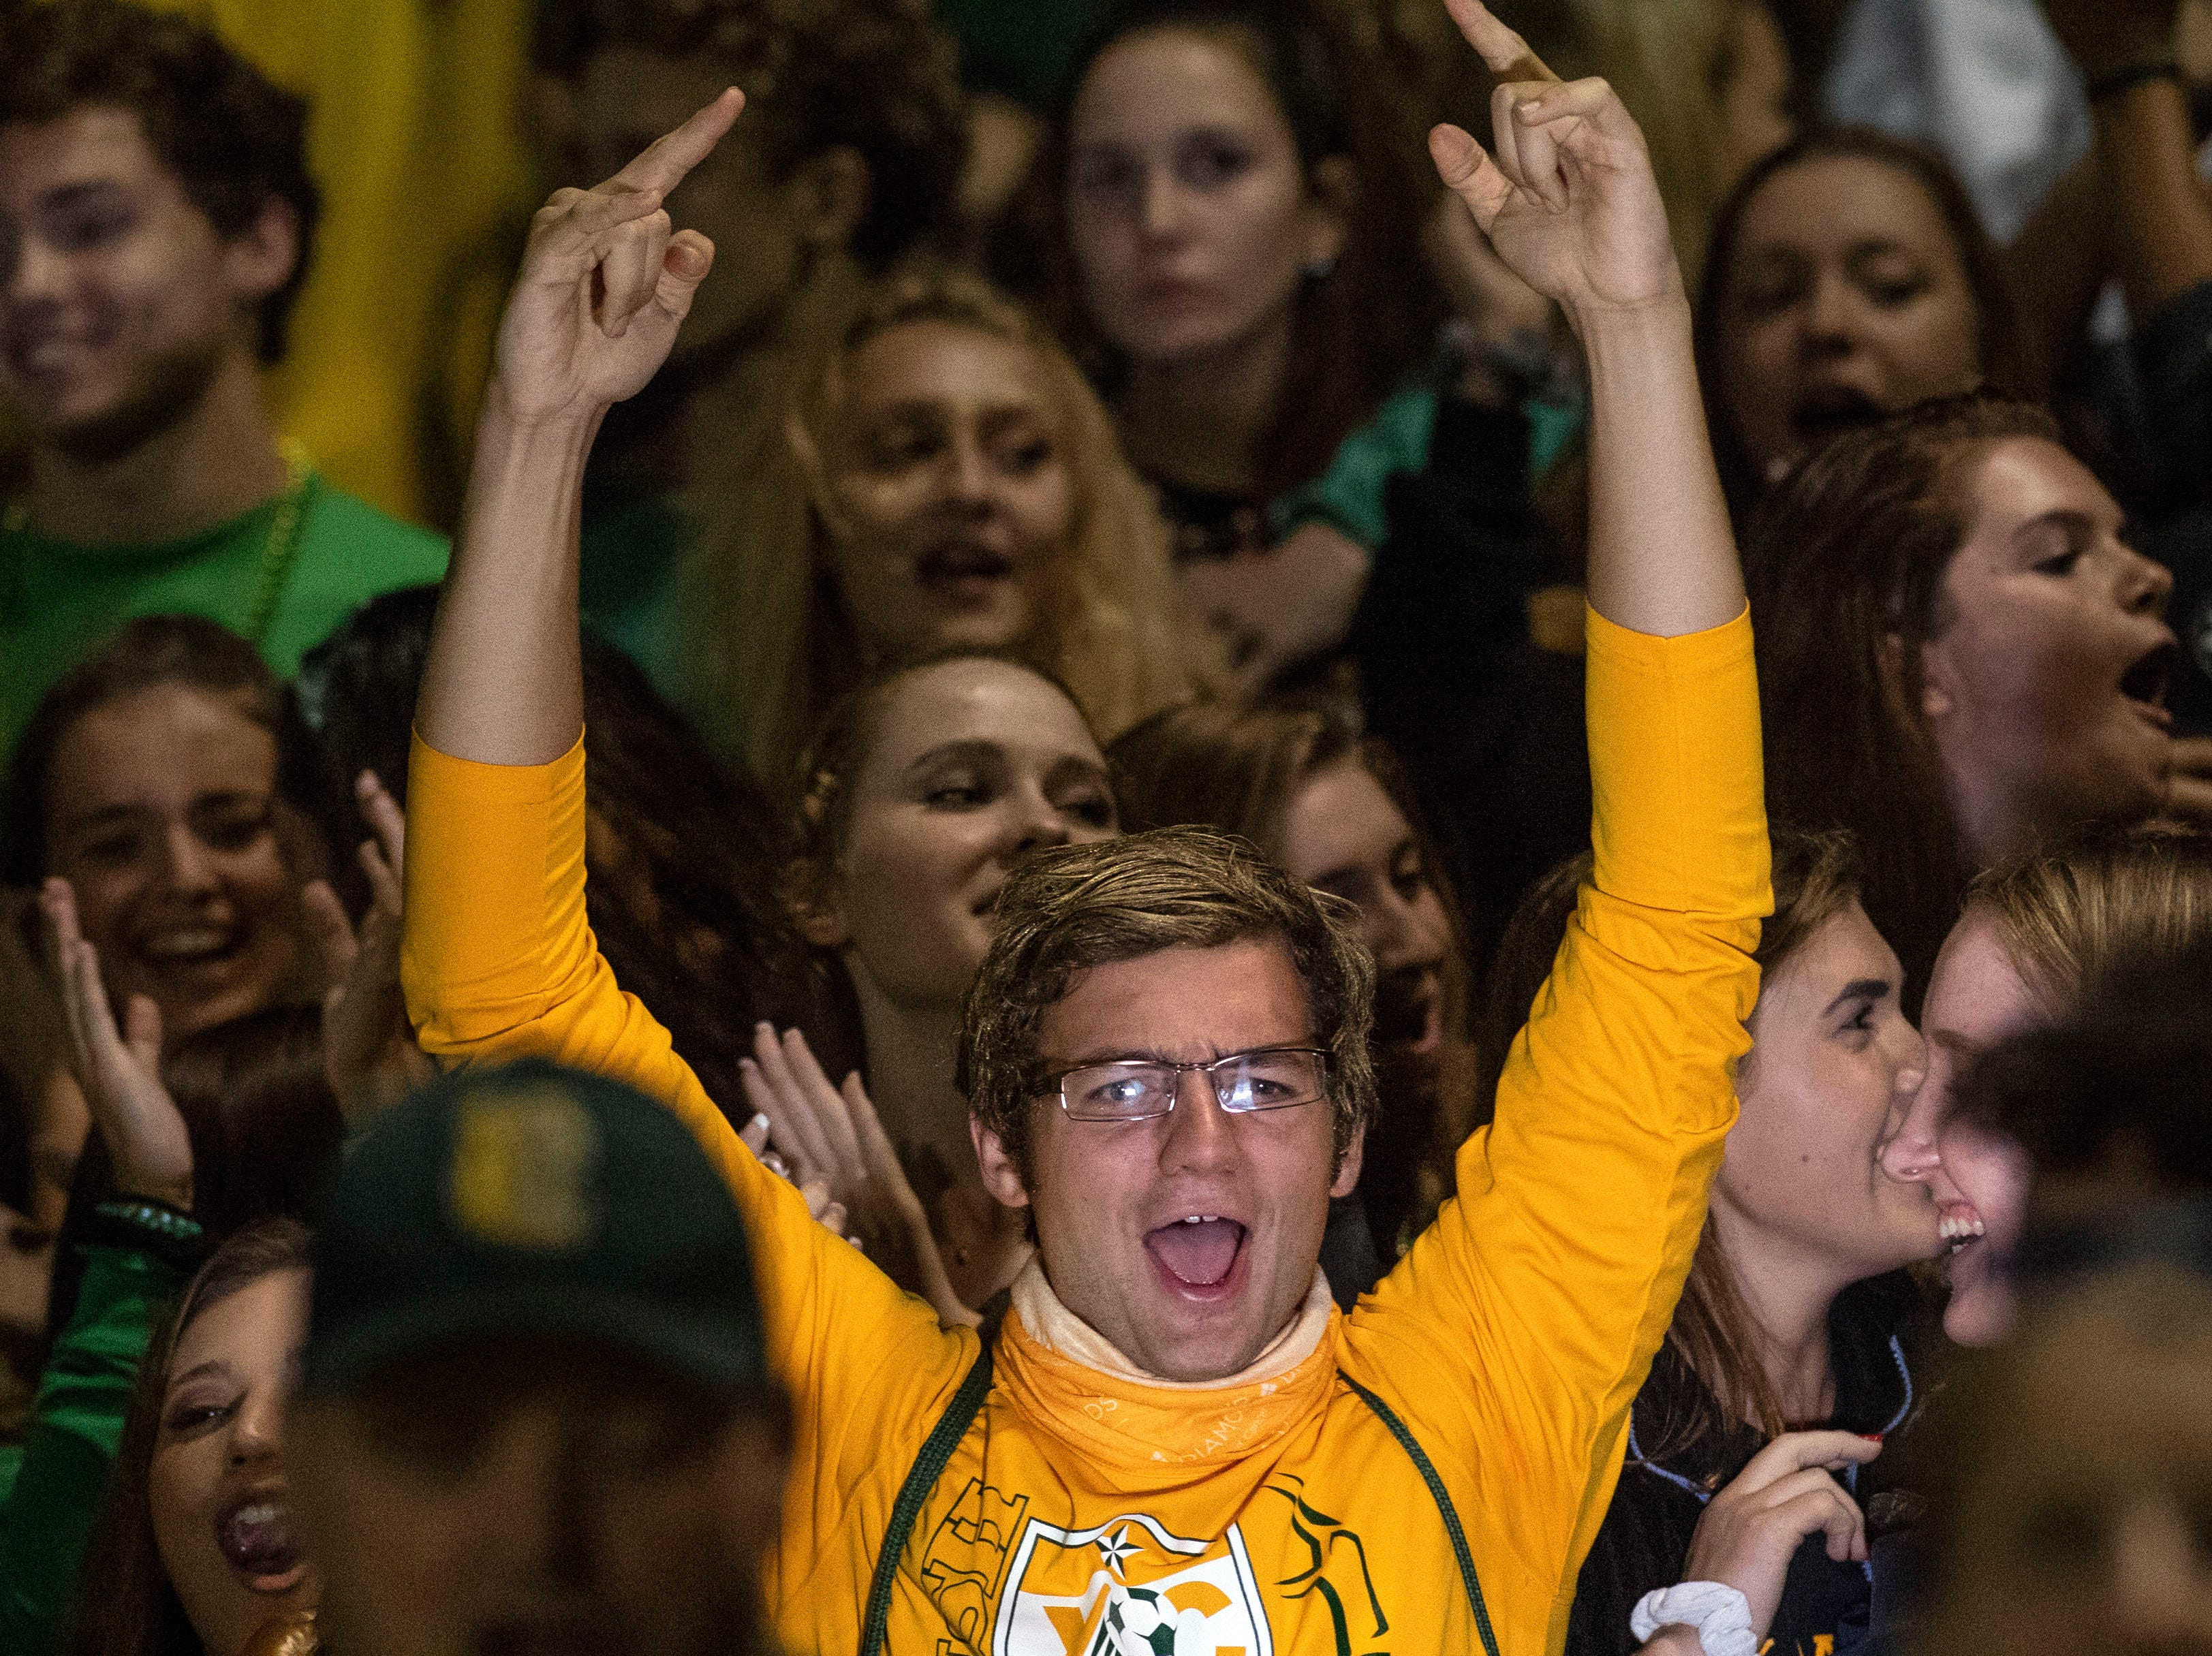 York Catholic students cheer on their team during a Division III football game on September 28, 2018. York Catholic (6-0) beat the Bermudian Springs Eagles (4-2) 10-7, during the Fighting Irish's homecoming.